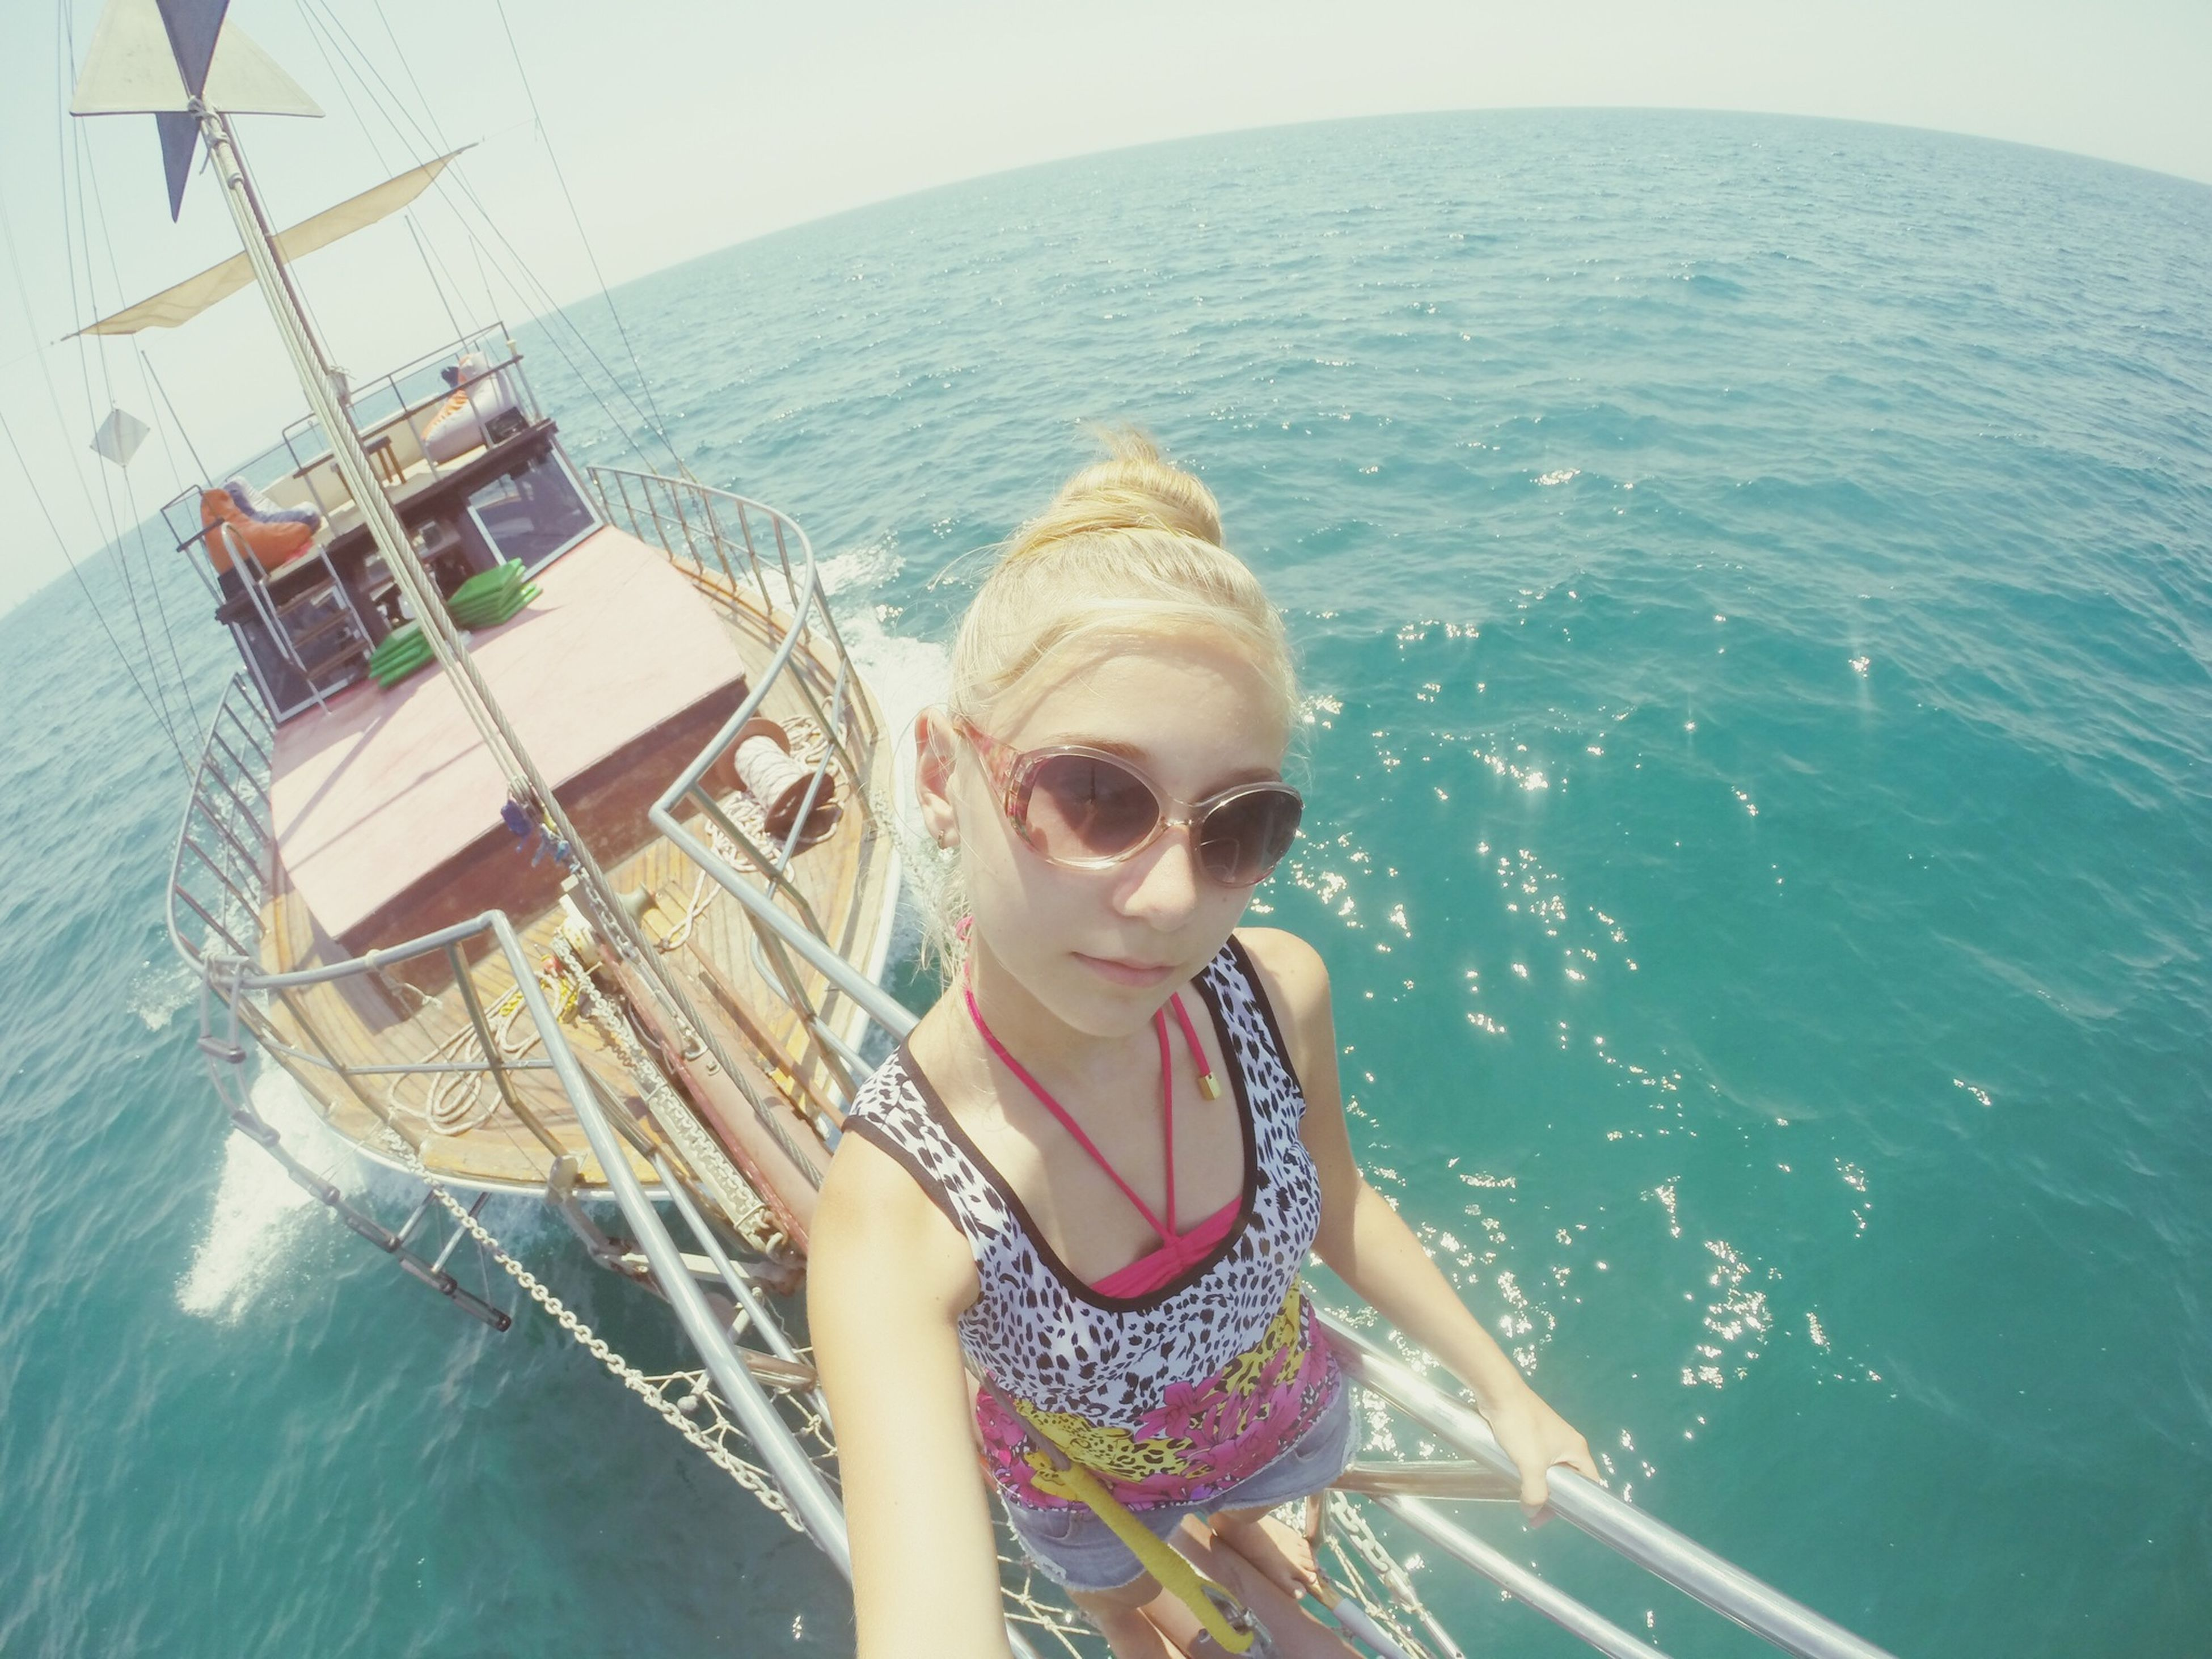 water, lifestyles, sea, leisure activity, young adult, person, casual clothing, young women, nautical vessel, portrait, looking at camera, vacations, standing, day, blue, three quarter length, sunglasses, transportation